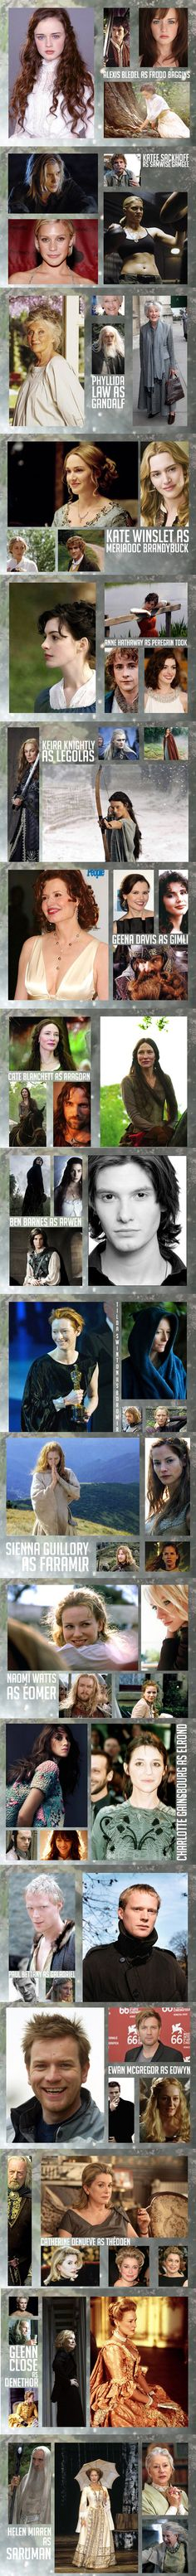 Lord of the Rings Genderbend. A lot of these actually work really well!